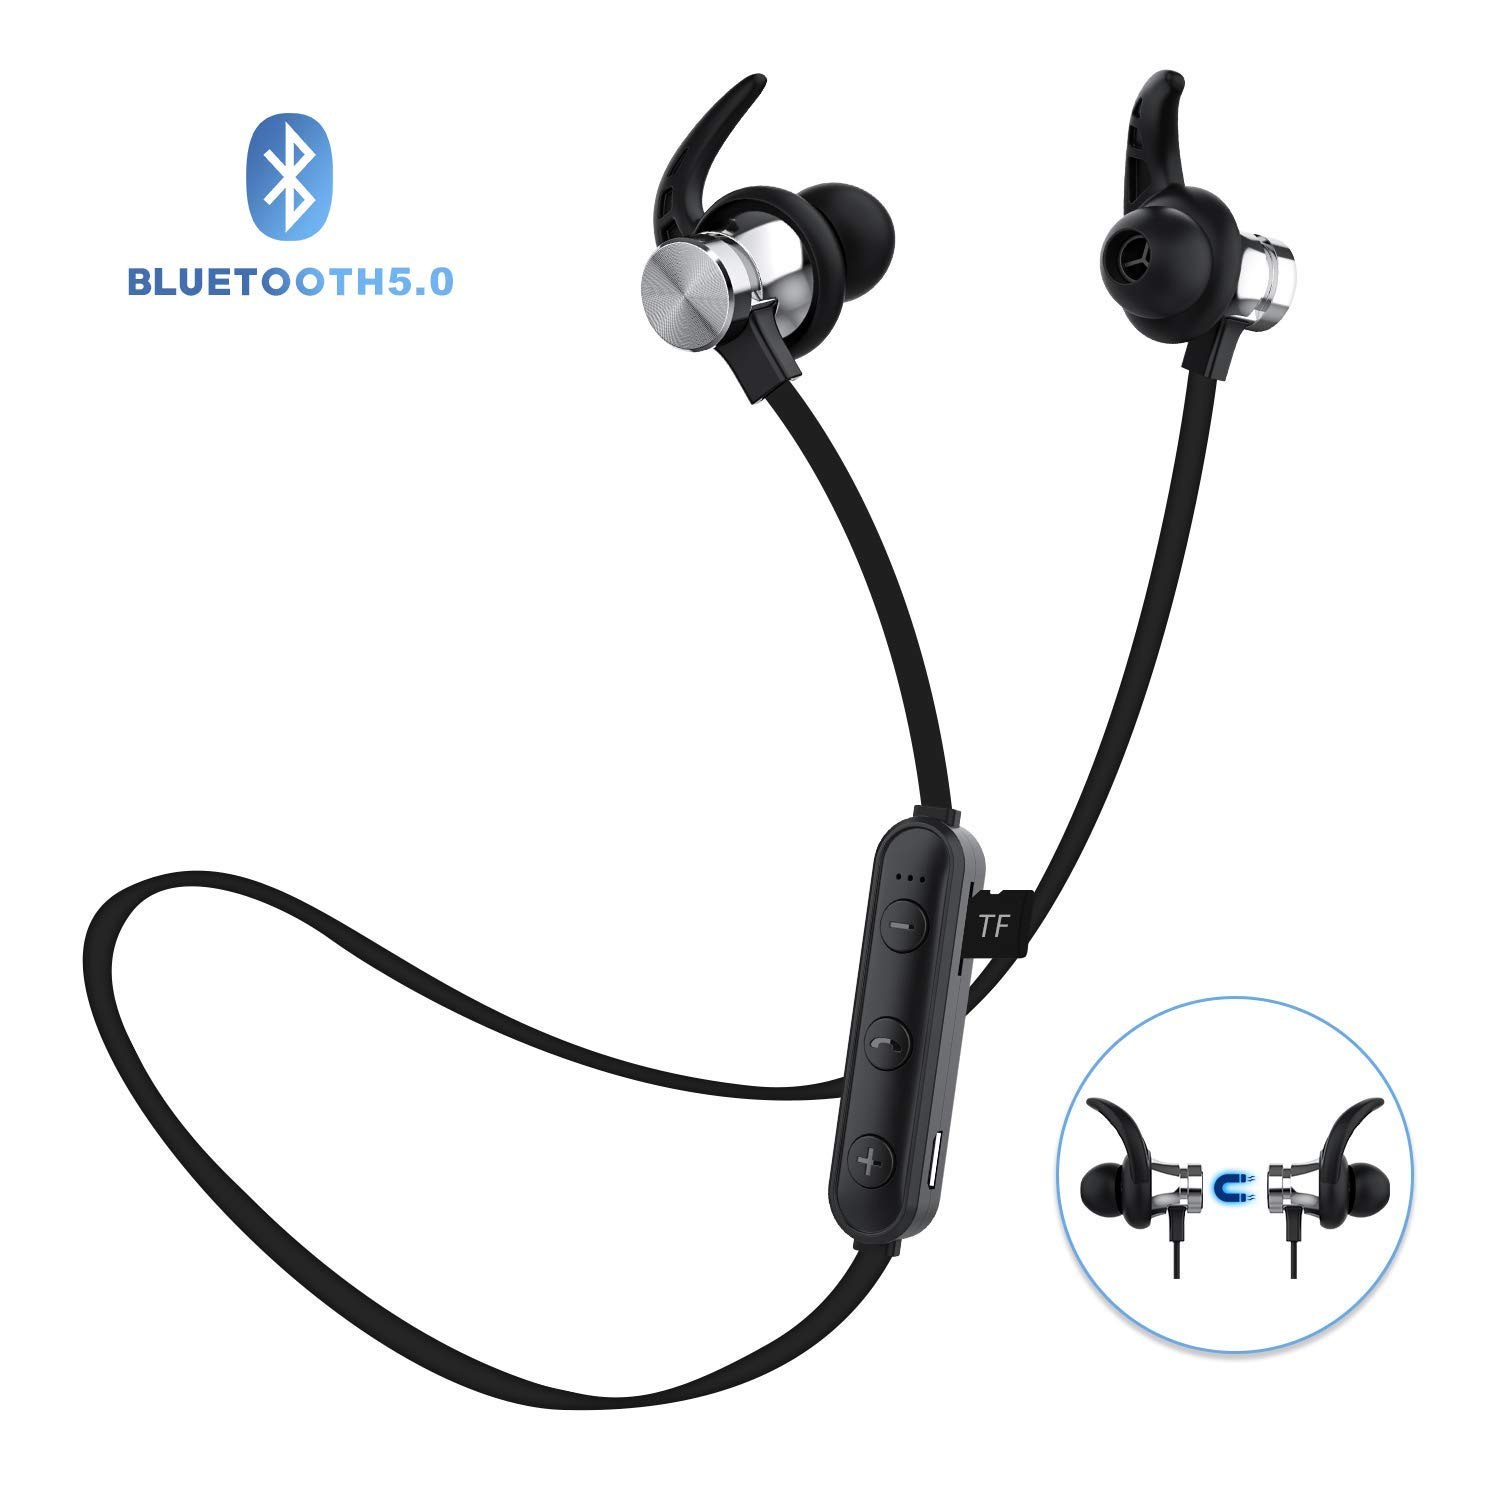 Bluetooth Headphones, ownta Bluetooth 5.0 Wireless Magnetic Earbuds, Snug Fit for Sports with Mic, TF Card Playback Compatible with iPhone iPad Samsung Android Smartphone